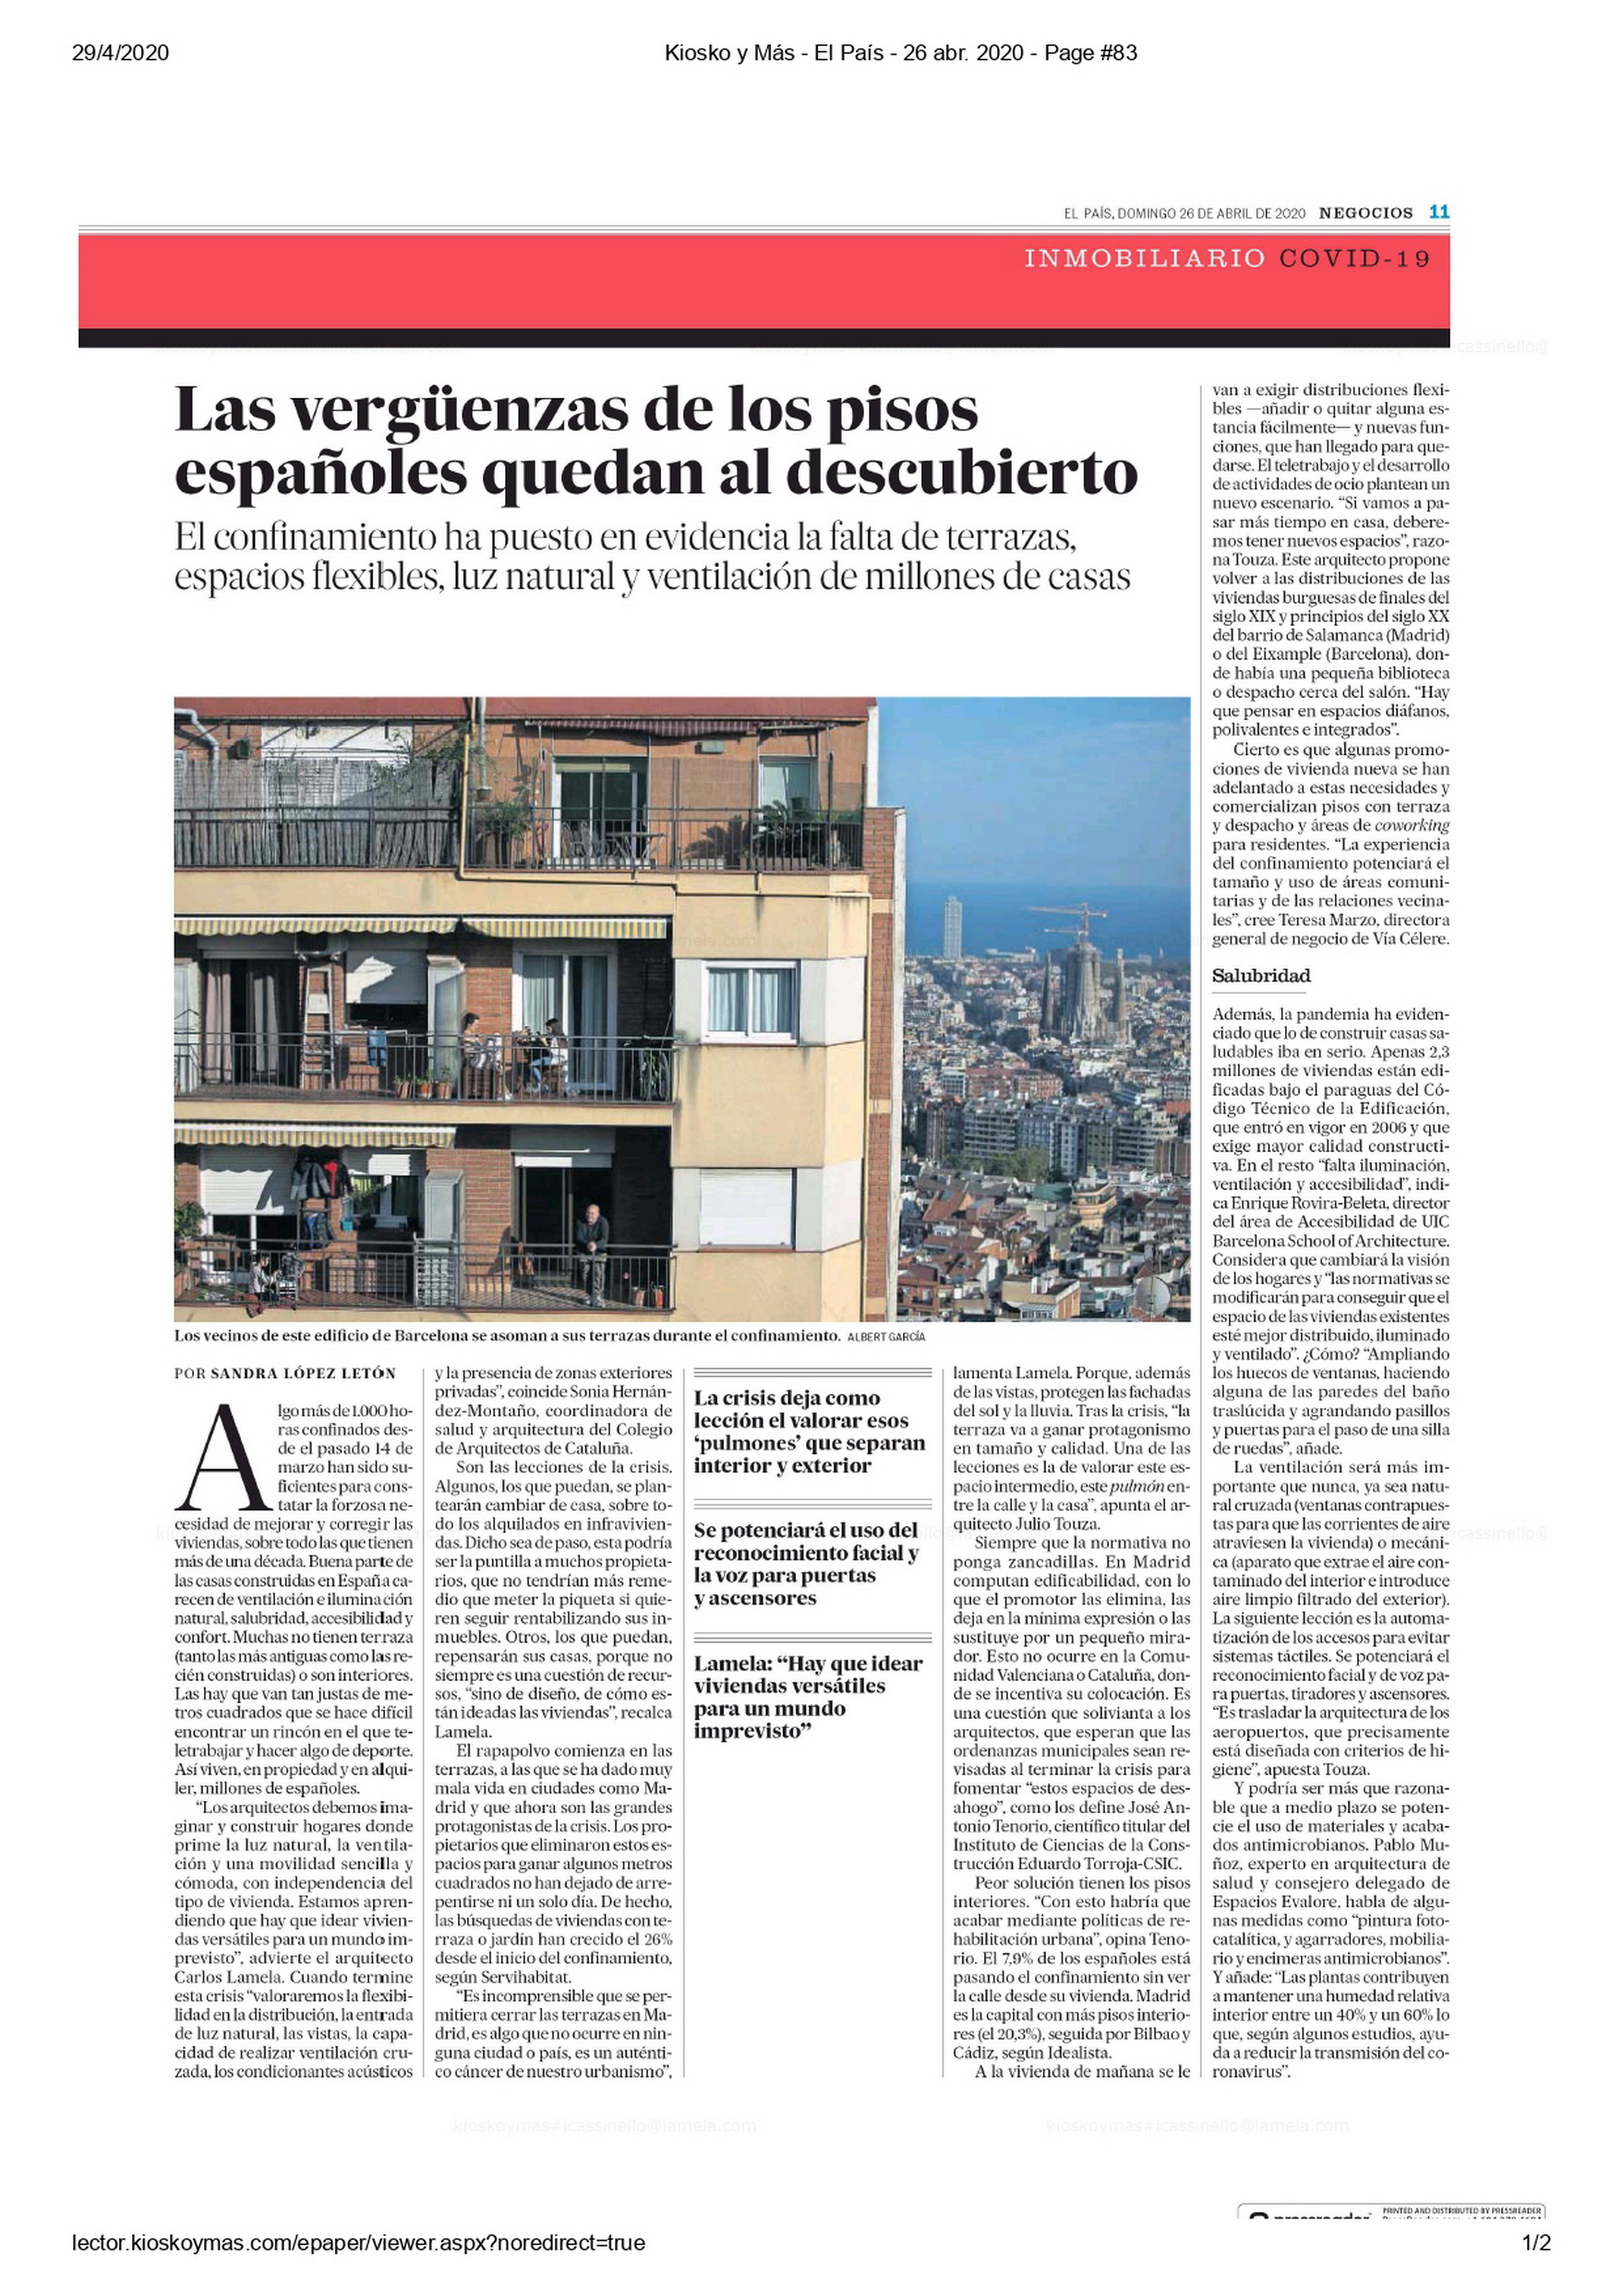 "Carlos Lamela explains in 'El País' that houses must be rethought. It's not a question of resources ""but of ideas"""